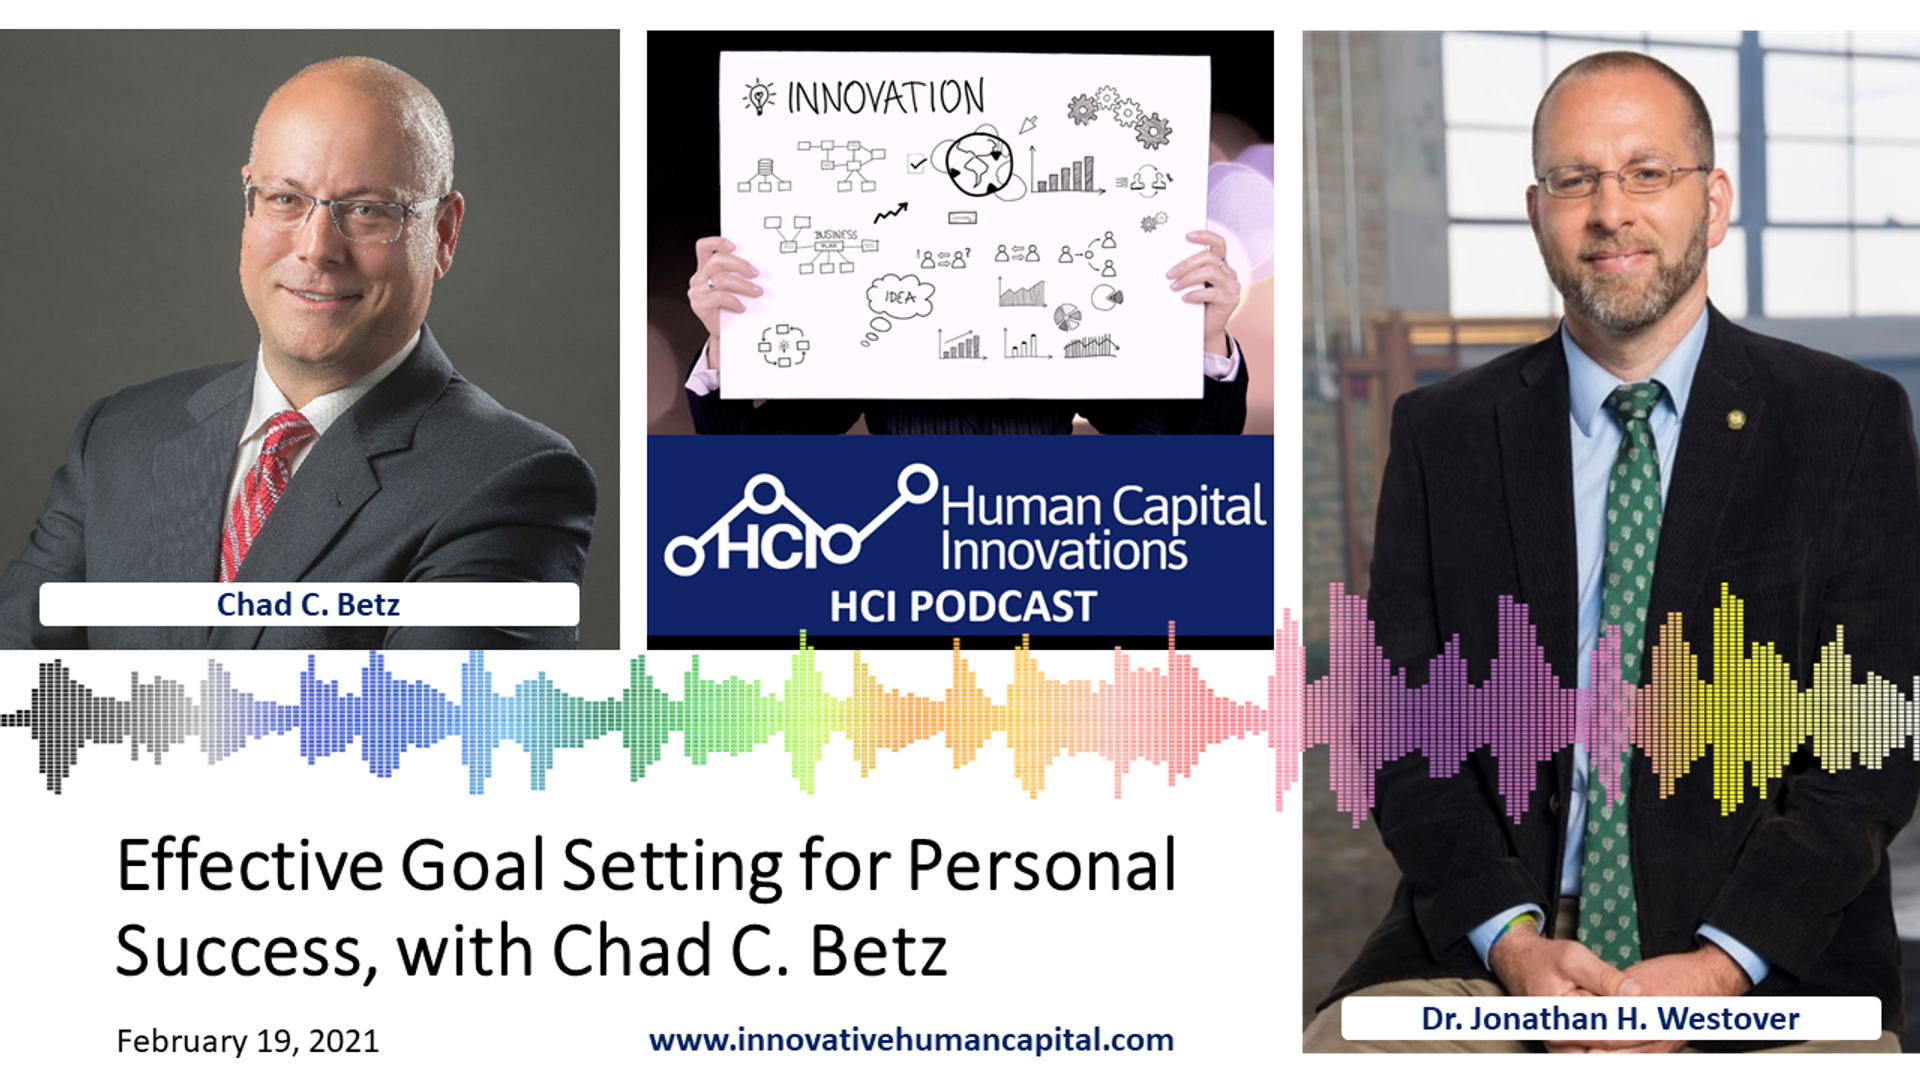 Effective Goal Setting for Personal Success